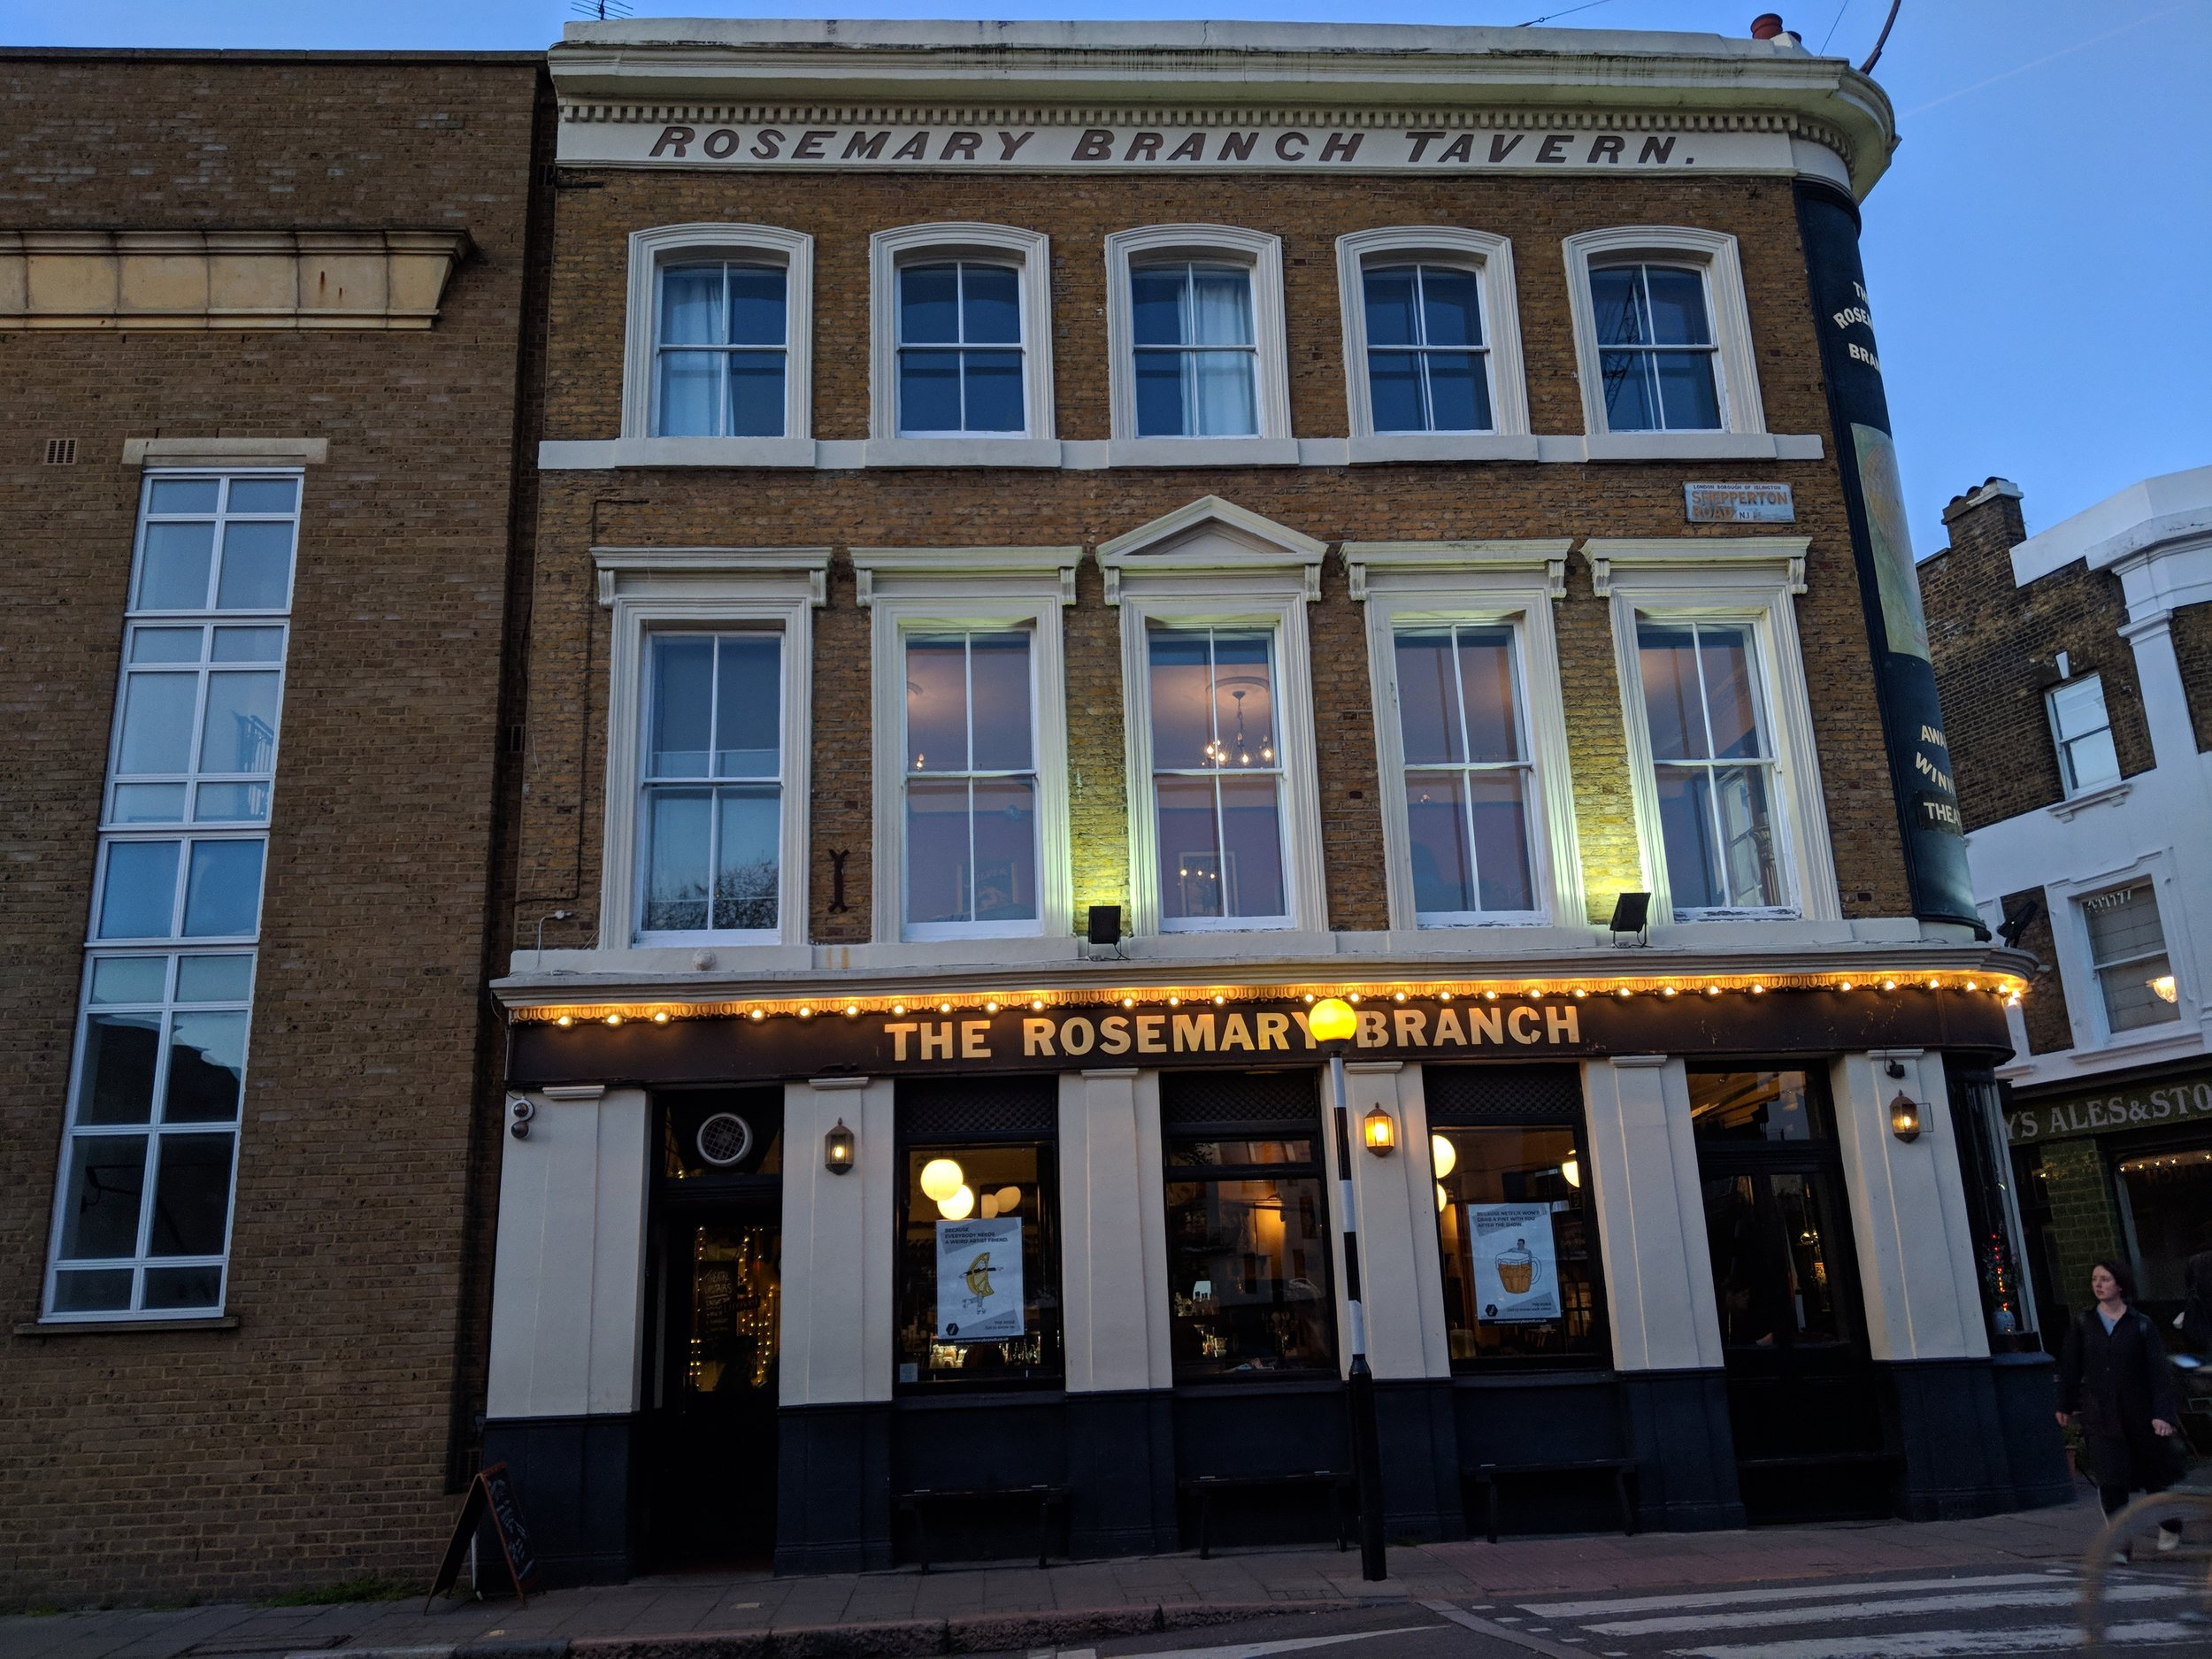 Rosemary Branch Theatre - visited 25/03/2019